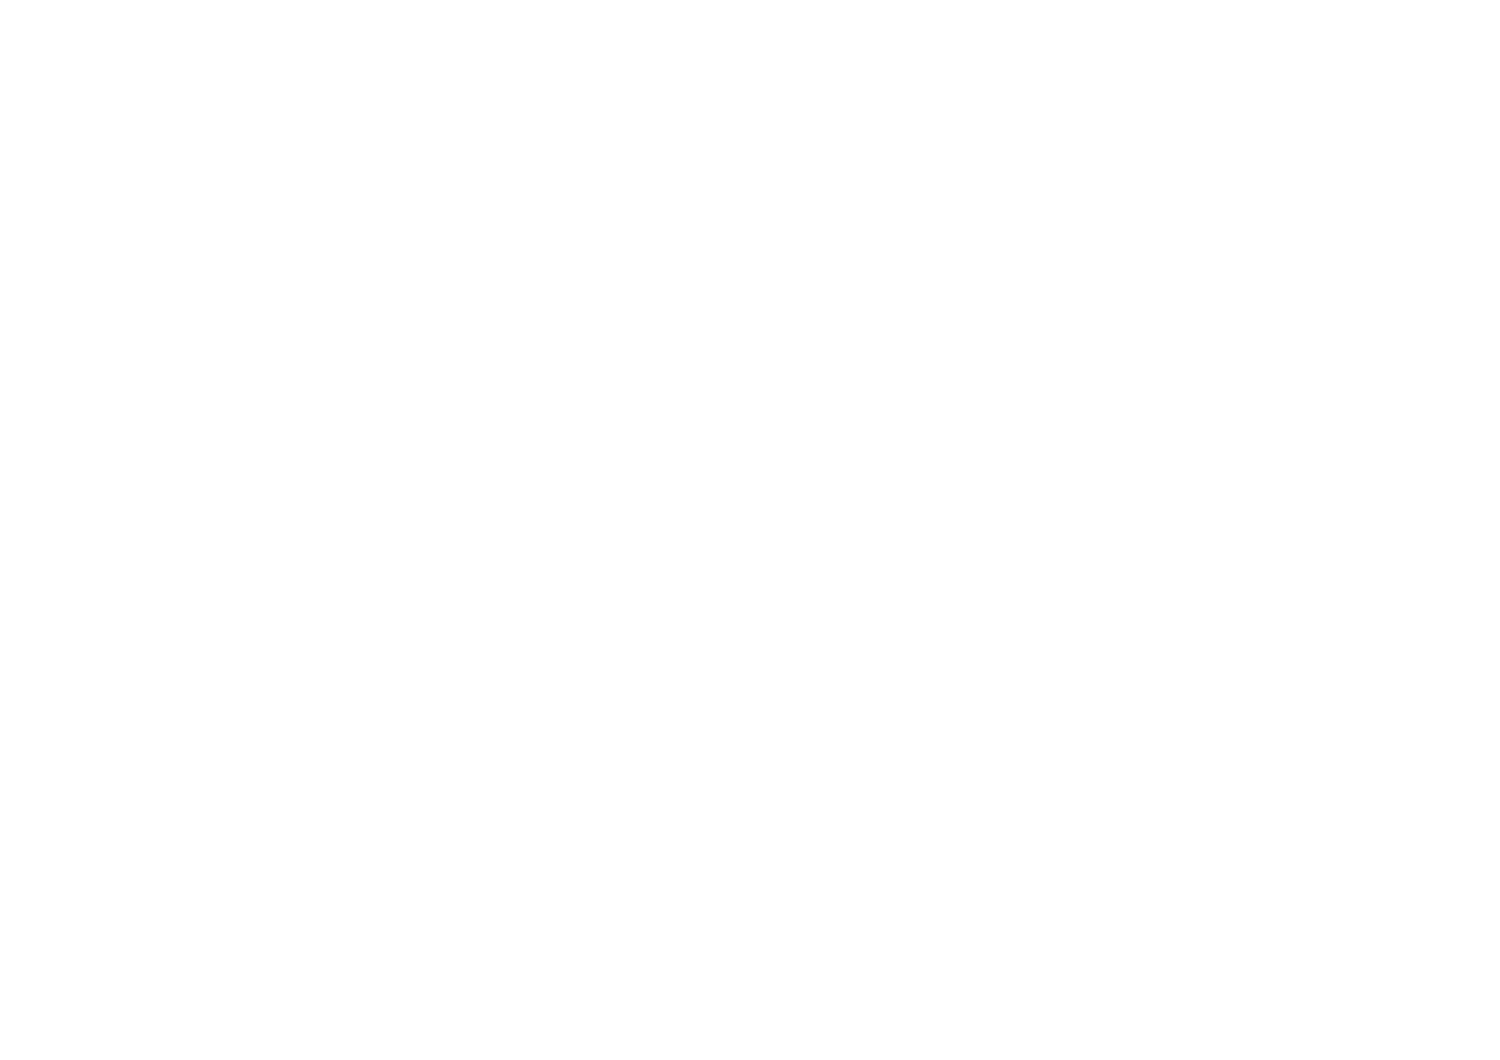 Foley Specialities Limited